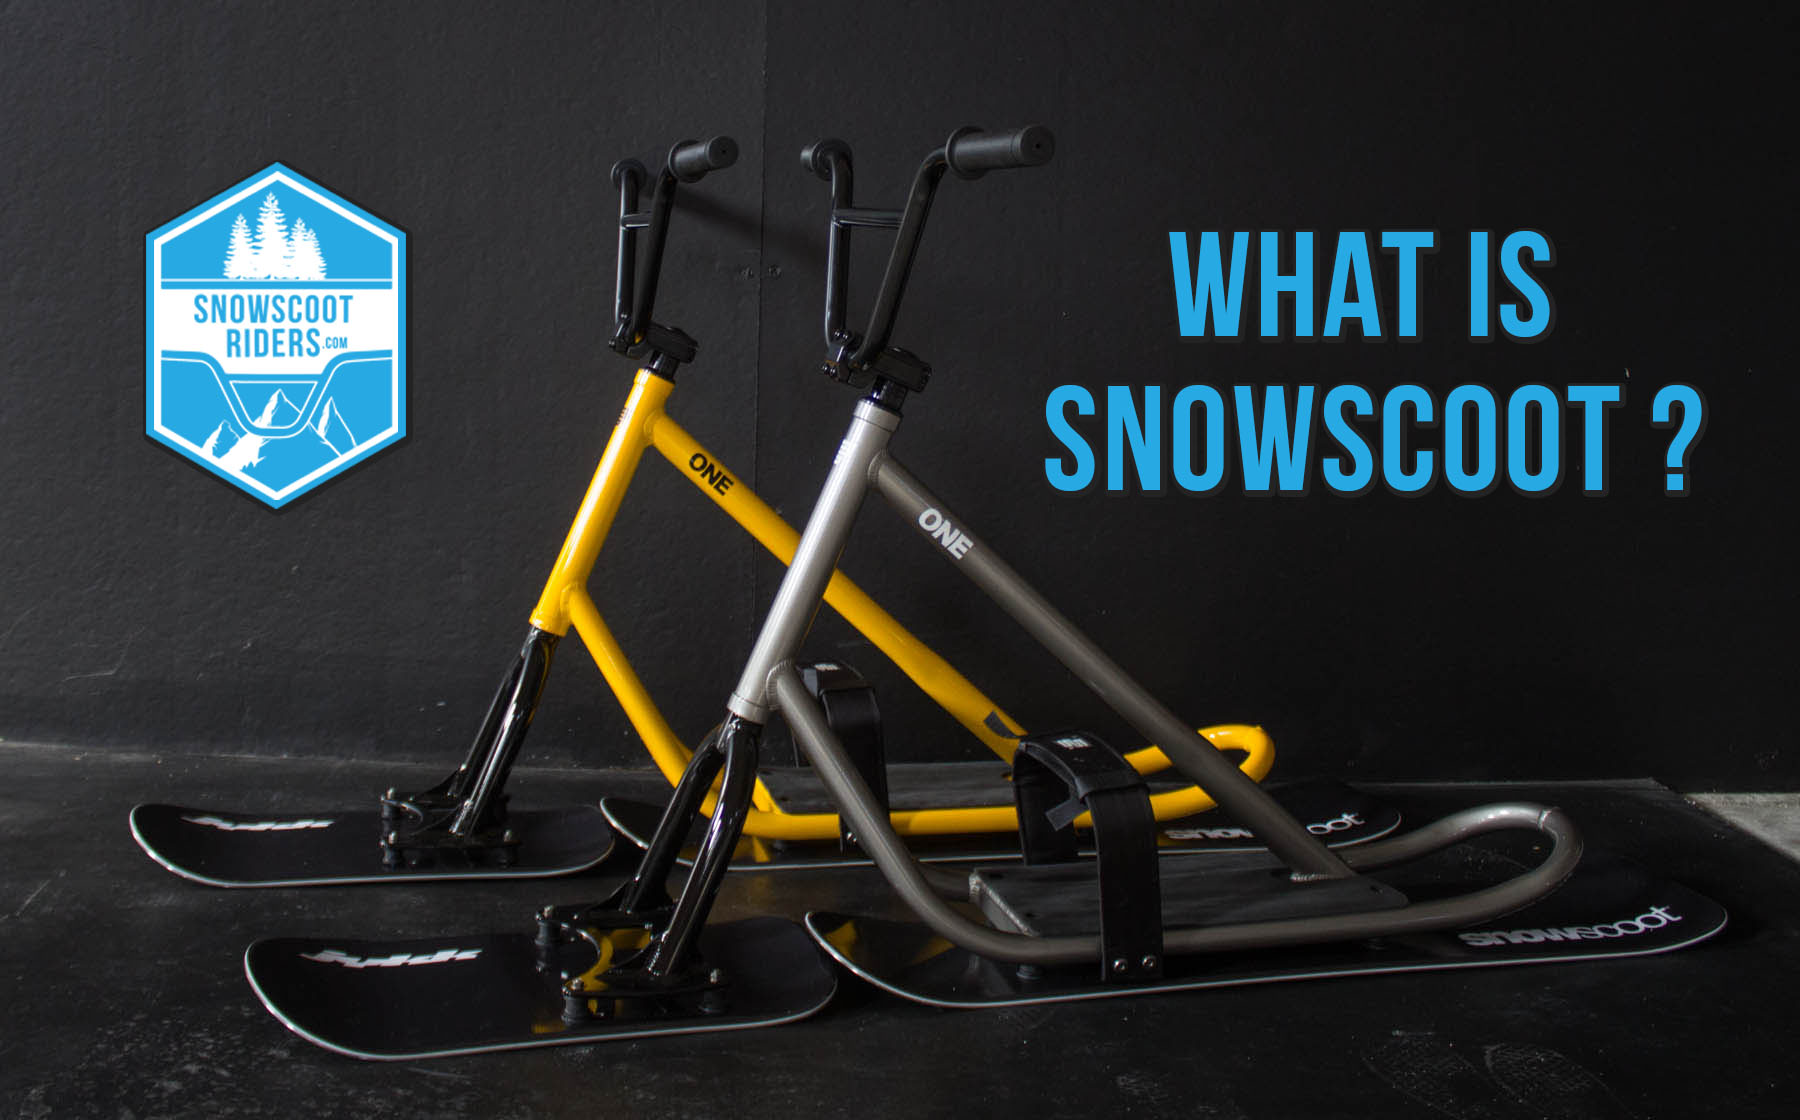 What is snowscoot?